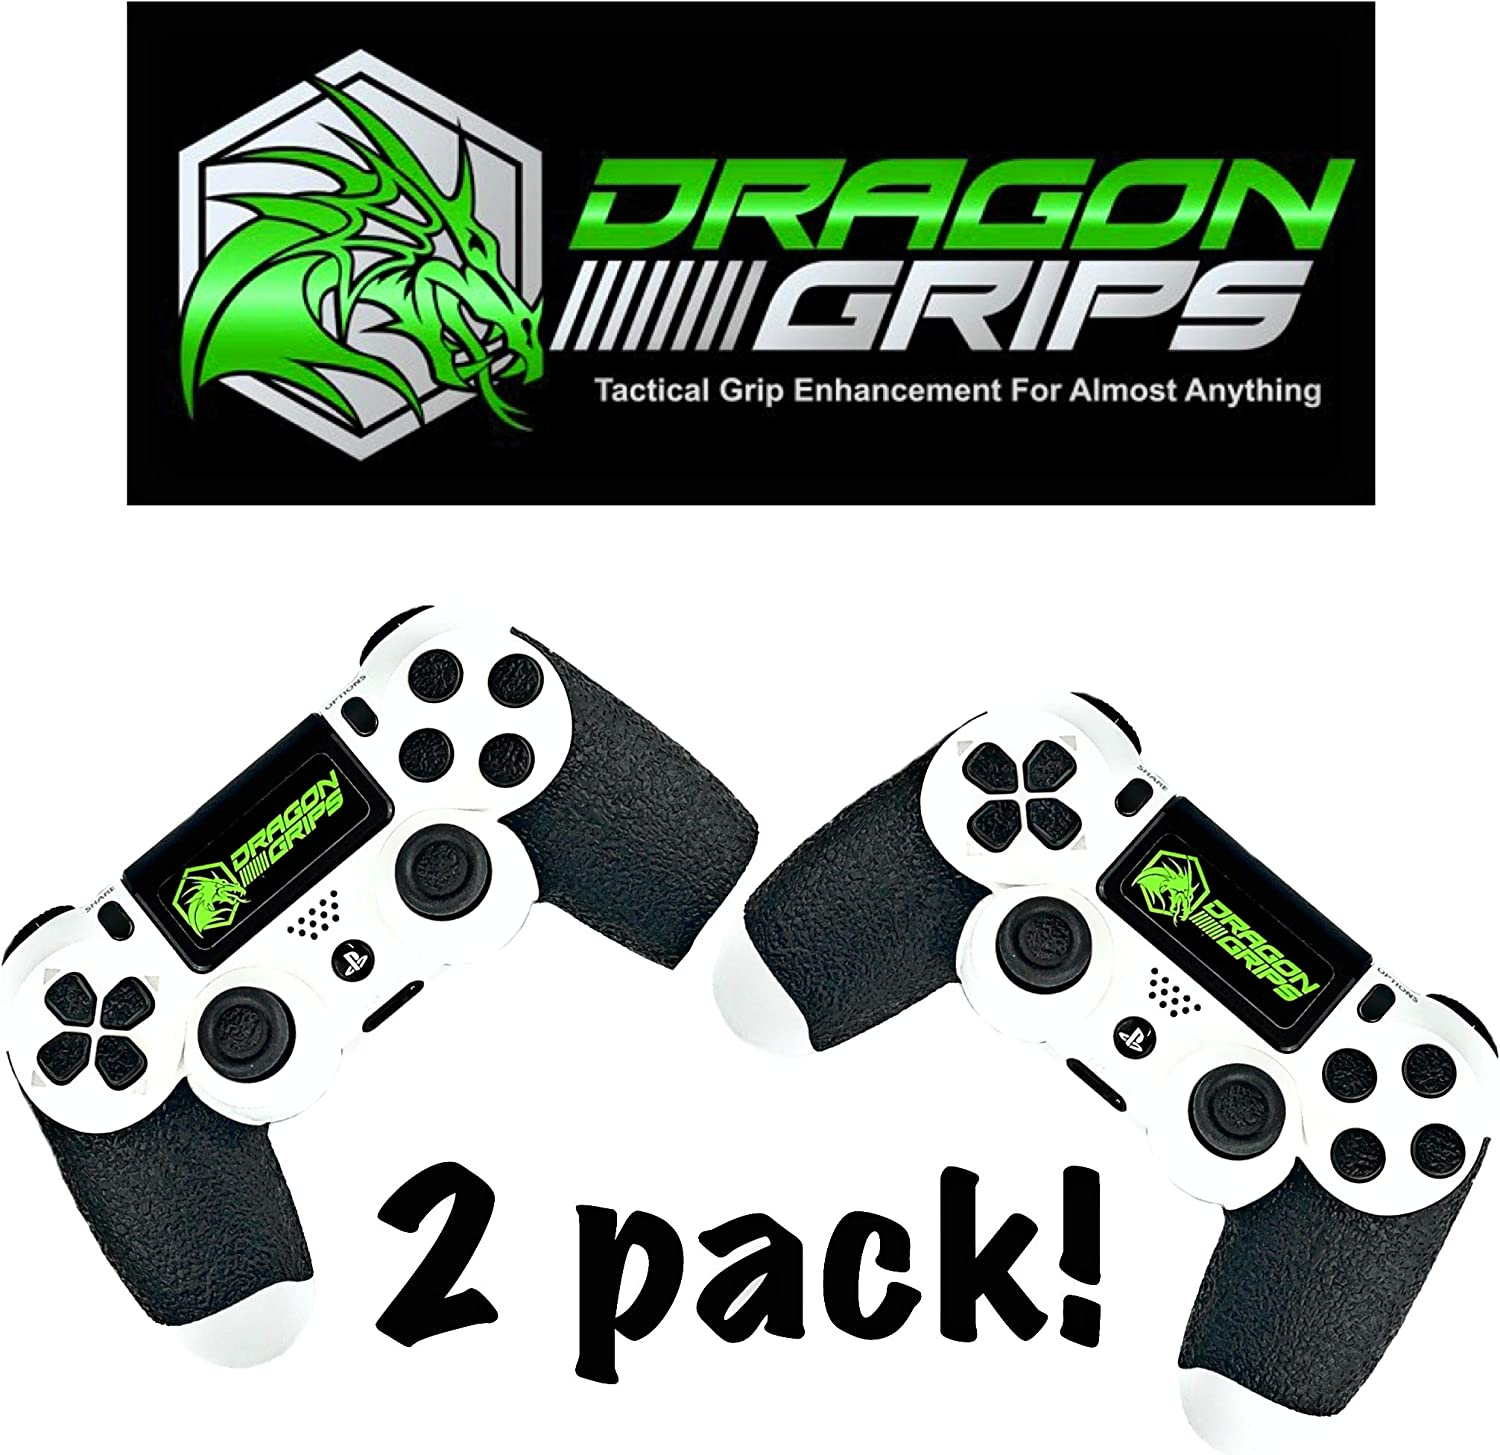 Dragon Grips PS4 Controller Grip Set Controller Accessories ps4 Controller Grip Black Textured Rubber mod Pack Including Paddles, Trigger Control ps4 Controller mods (Black 2pack)